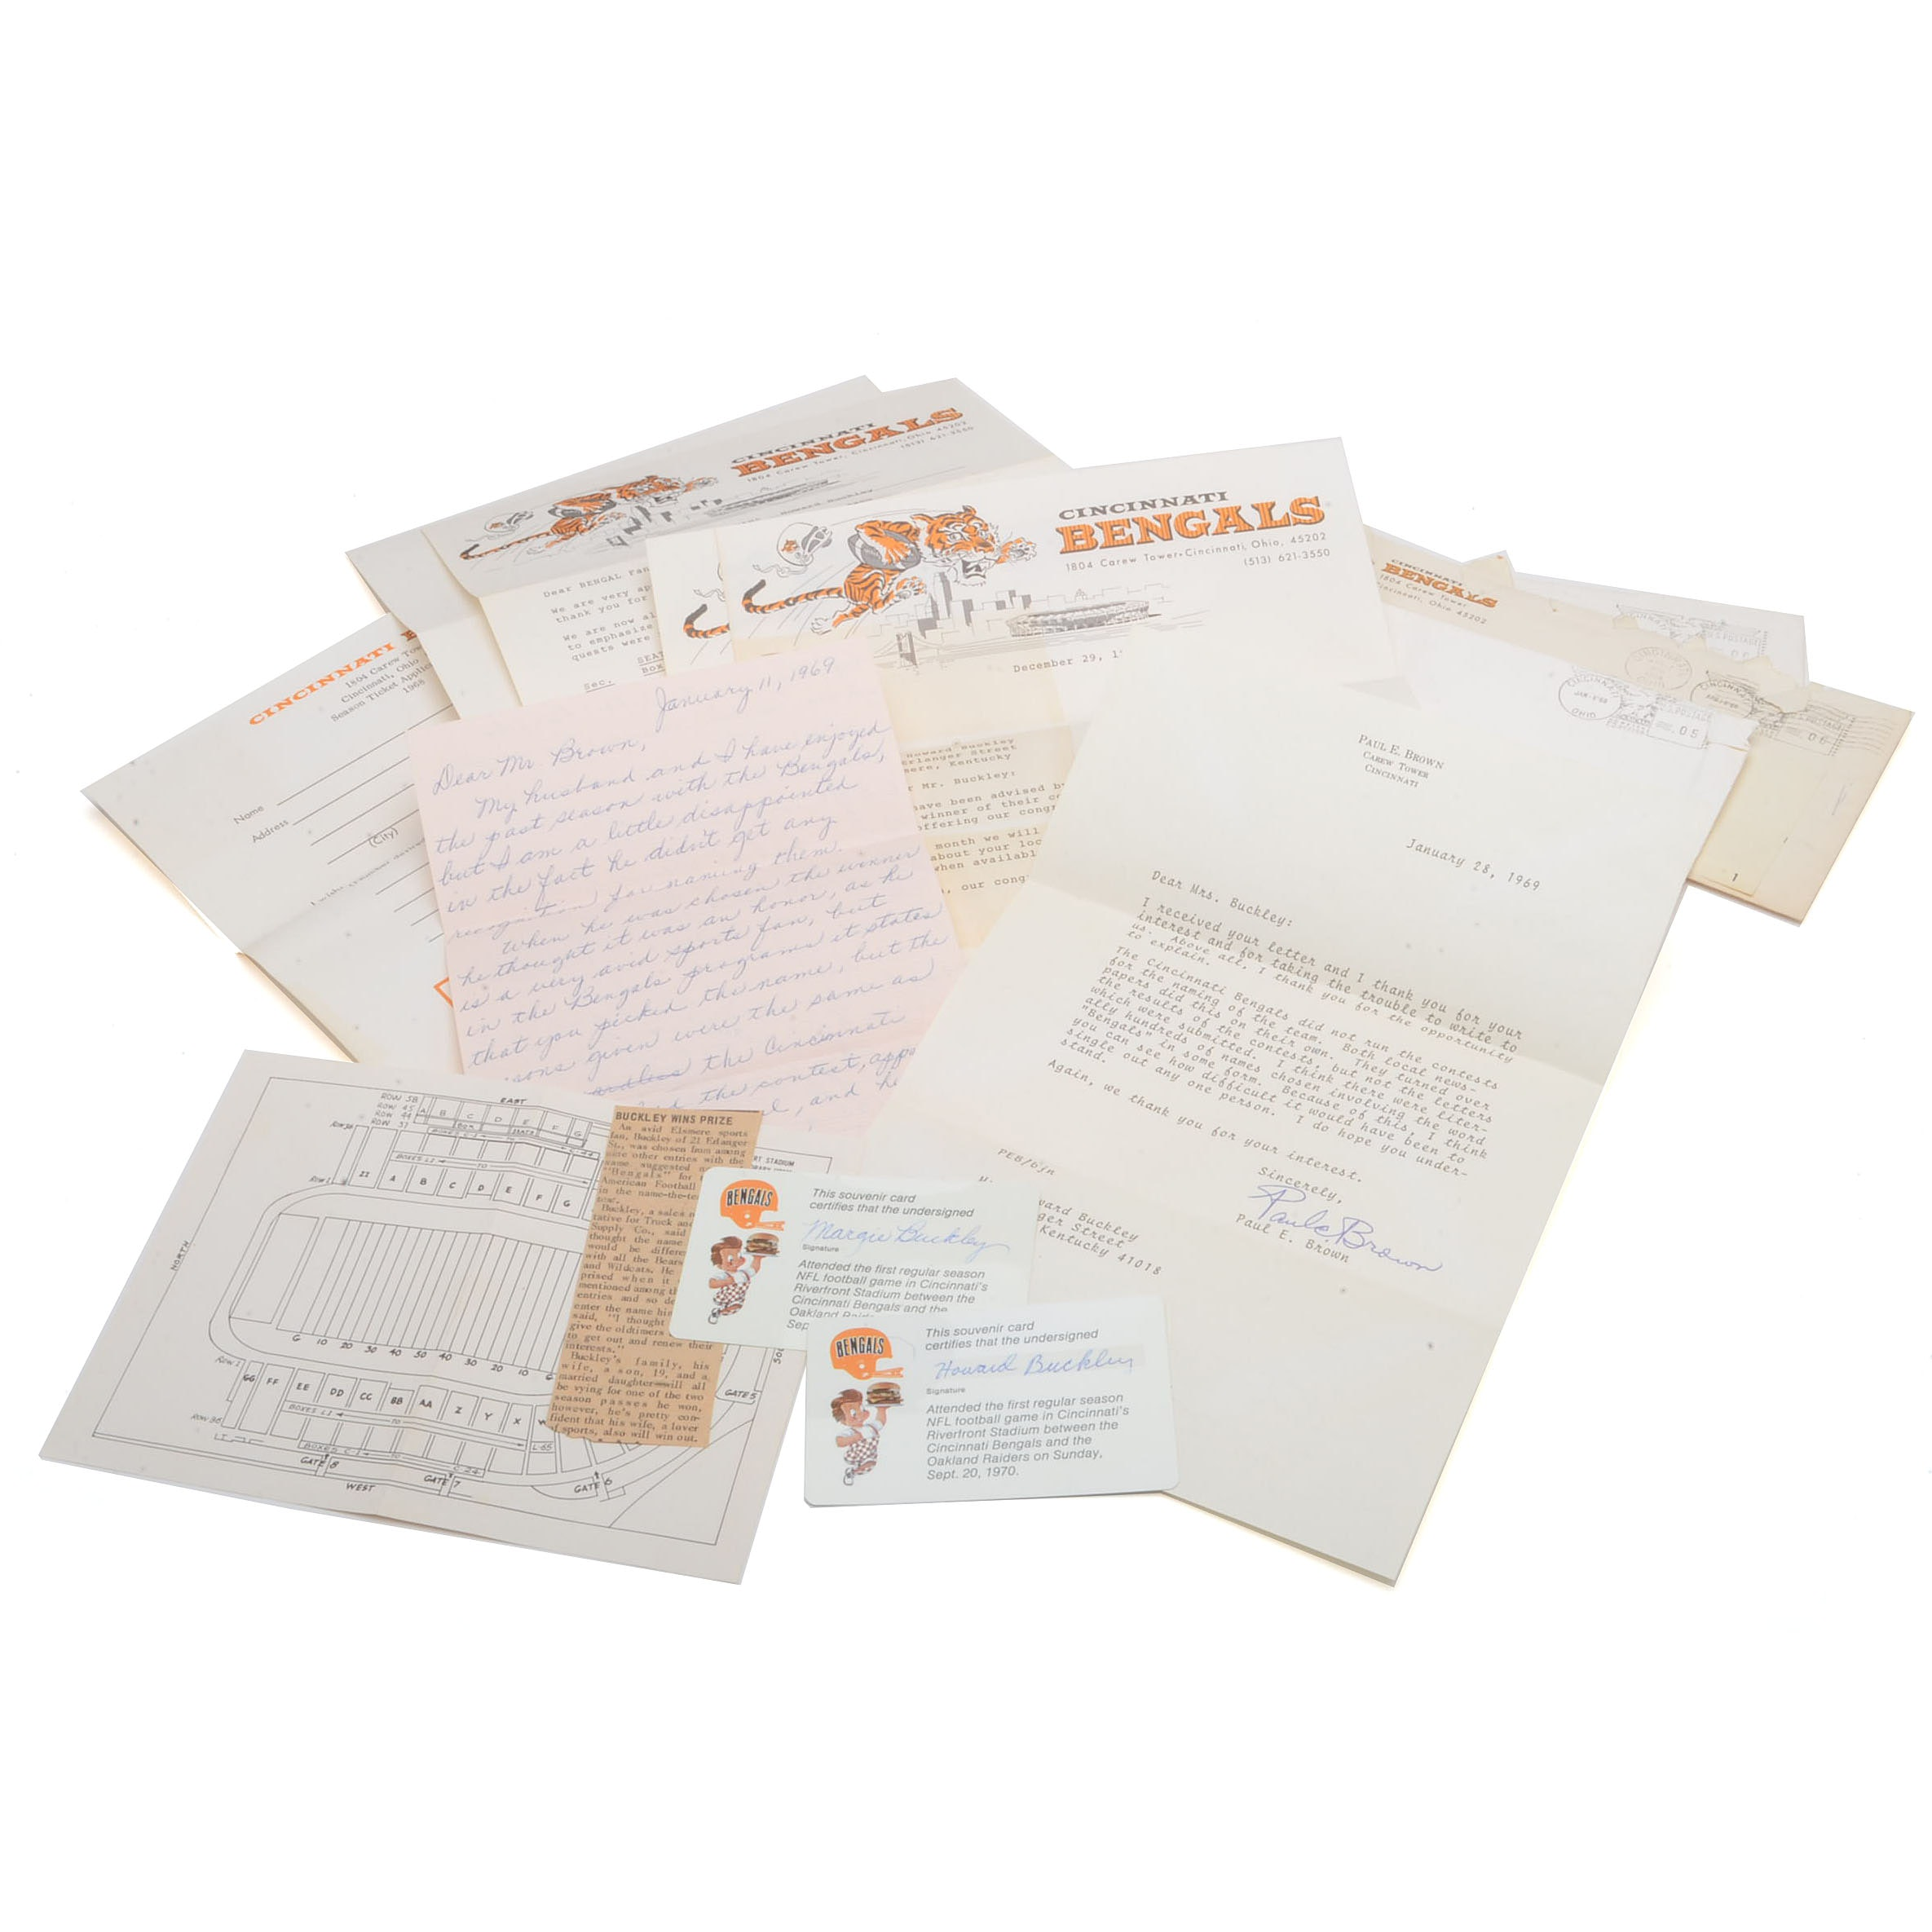 1968-69 Bengals Paul Brown Correspondence Letters